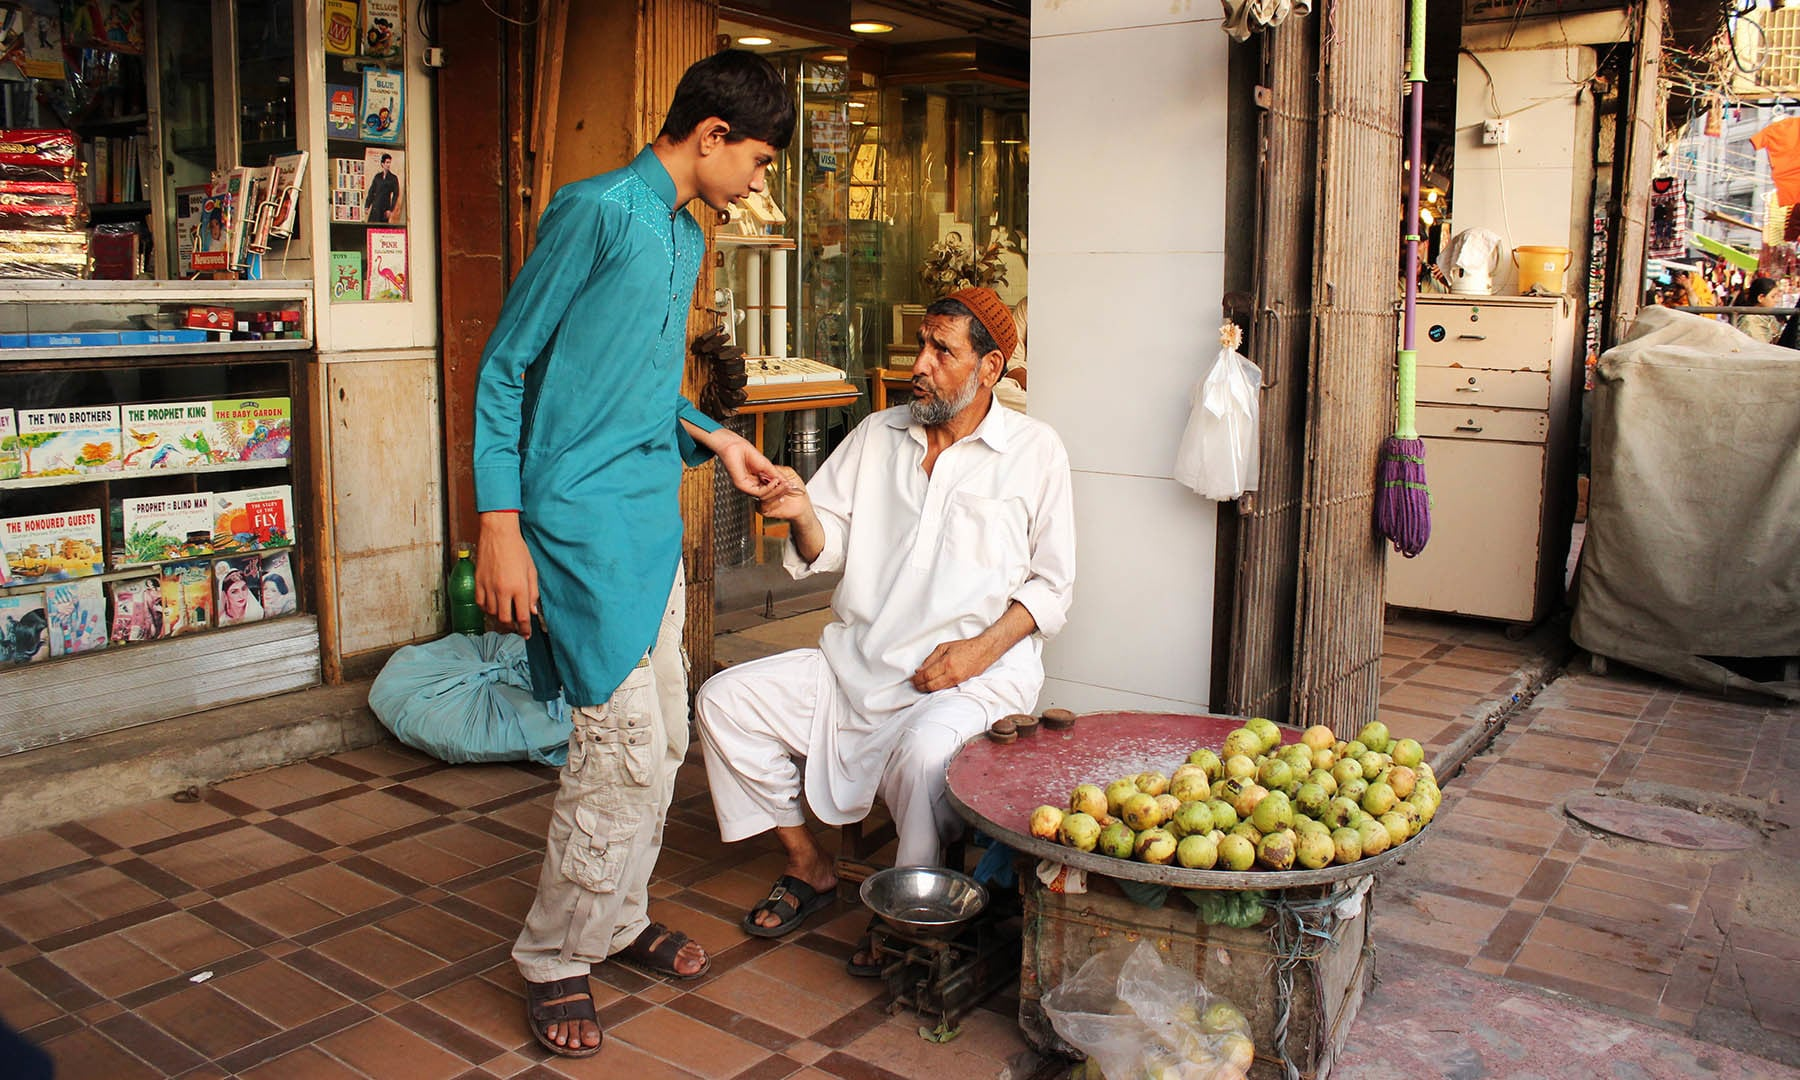 Sabir Chacha guides a boy about keeping change.